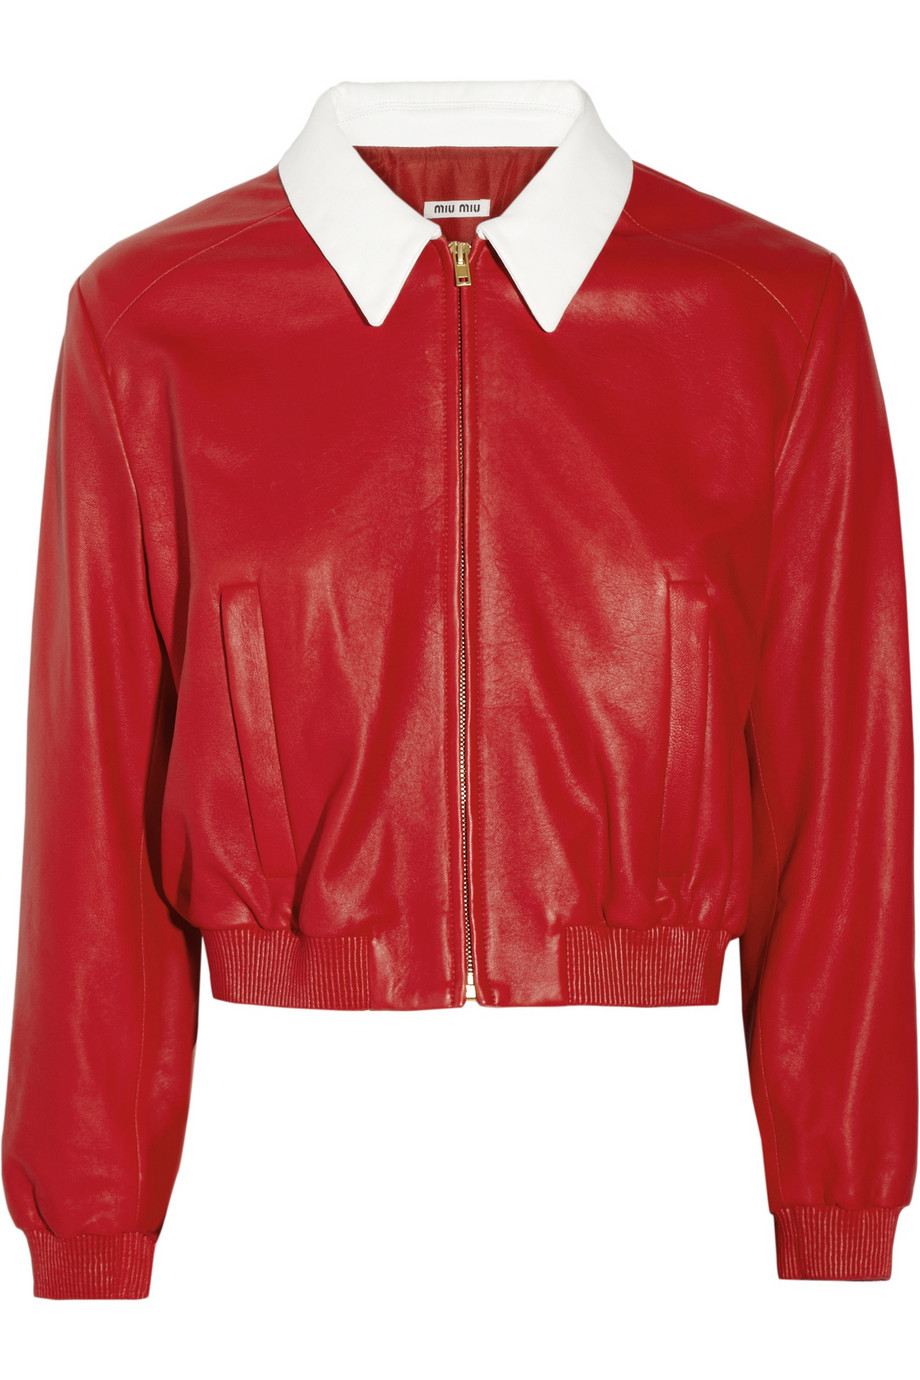 Lyst Miu Miu Leather Bomber Jacket In Red